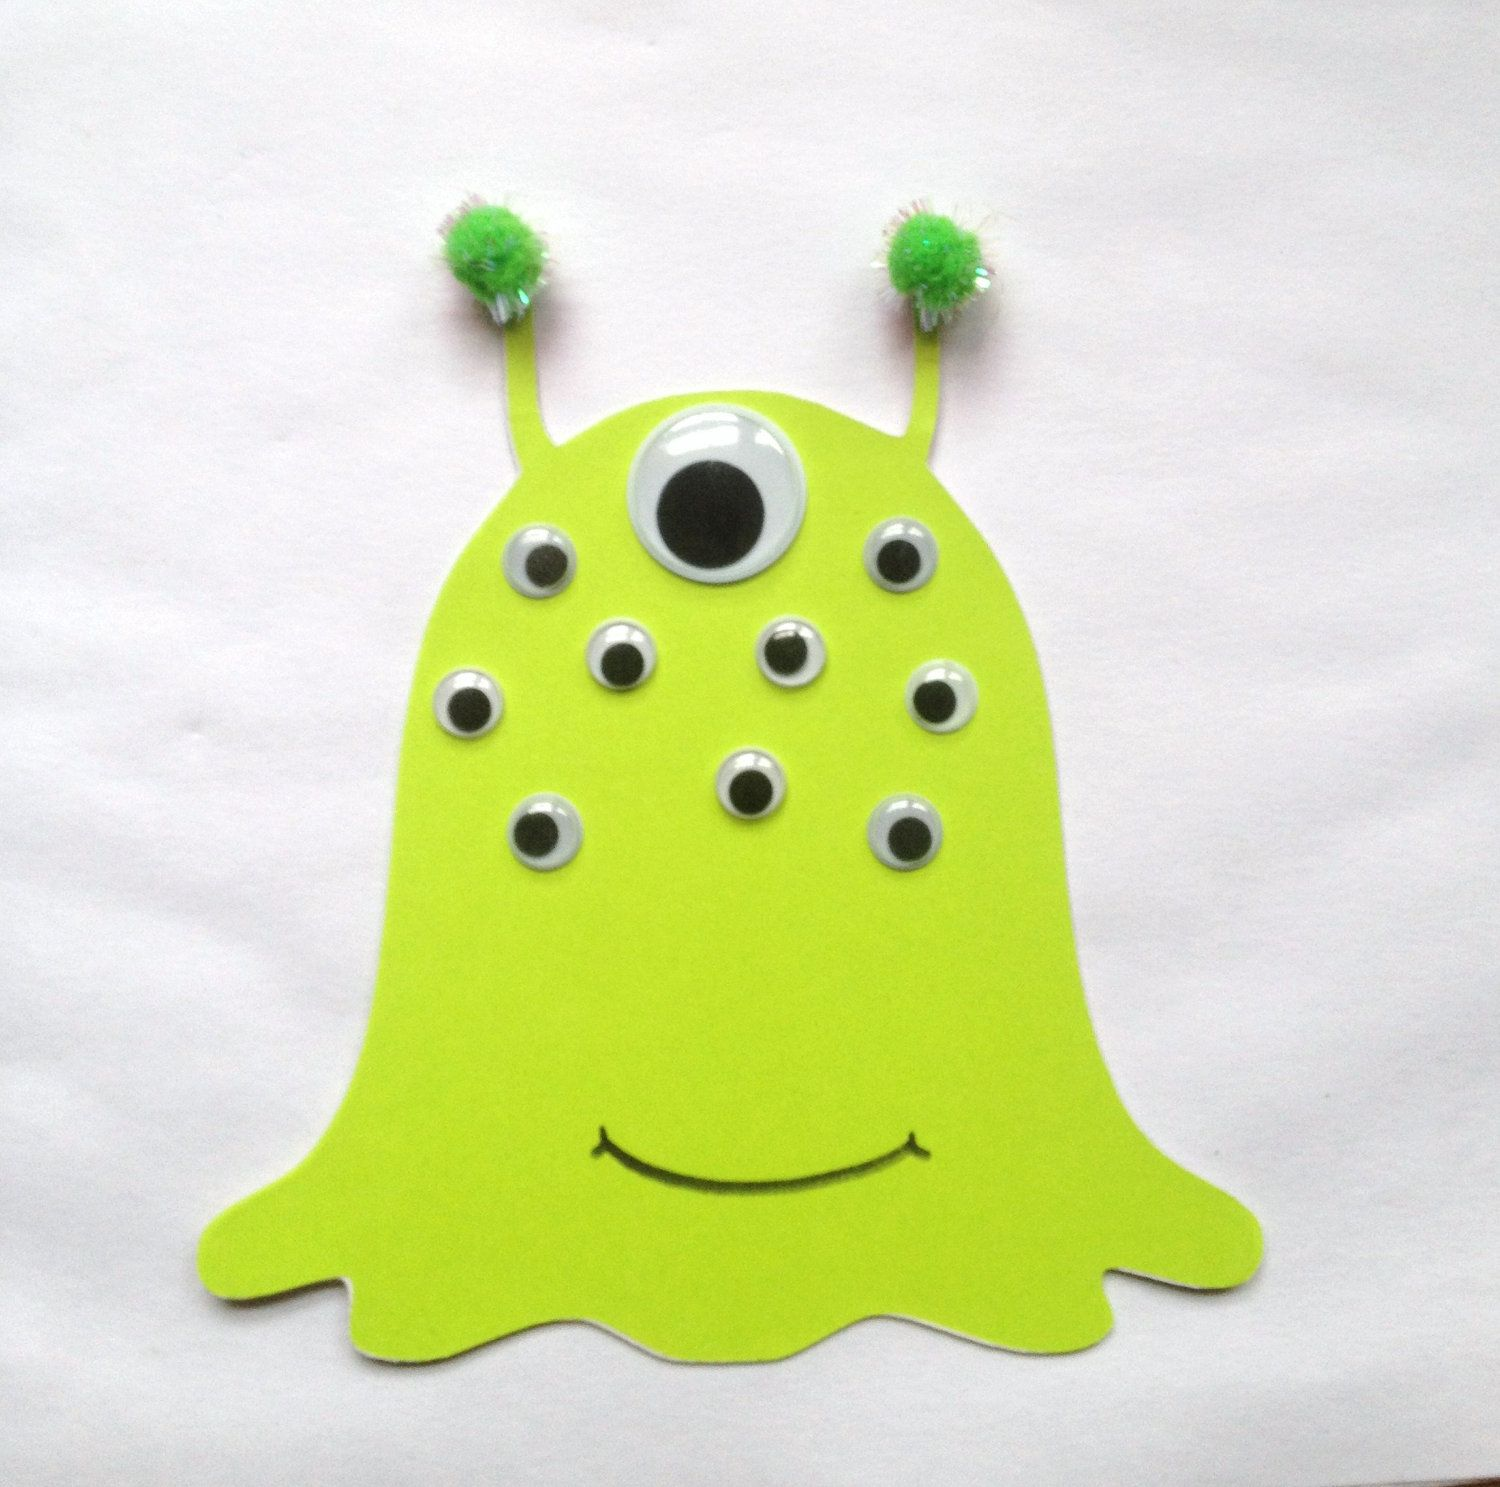 Space Crafts For Kids Alien Craft Kids Crafty Pinterest Aliens Craft And